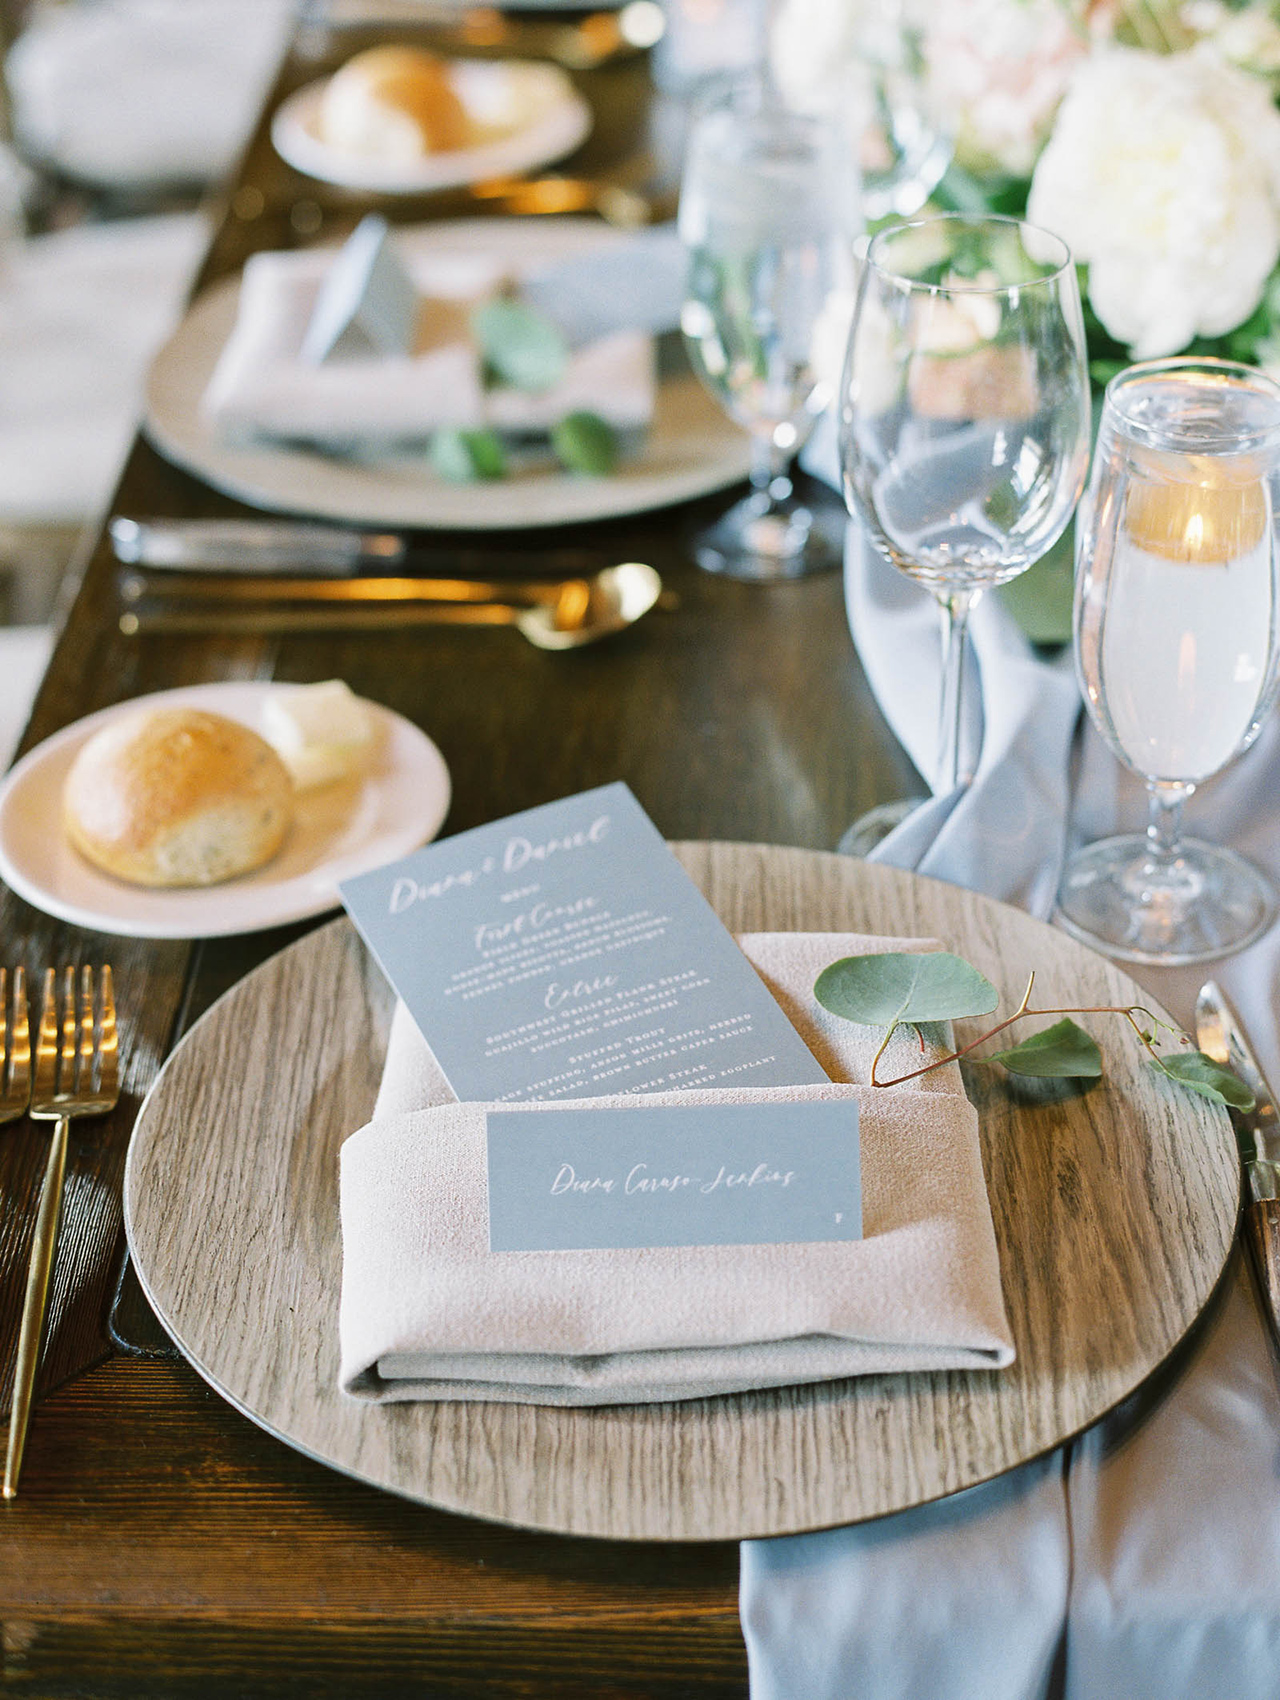 reception place setting menus wood pattern plates